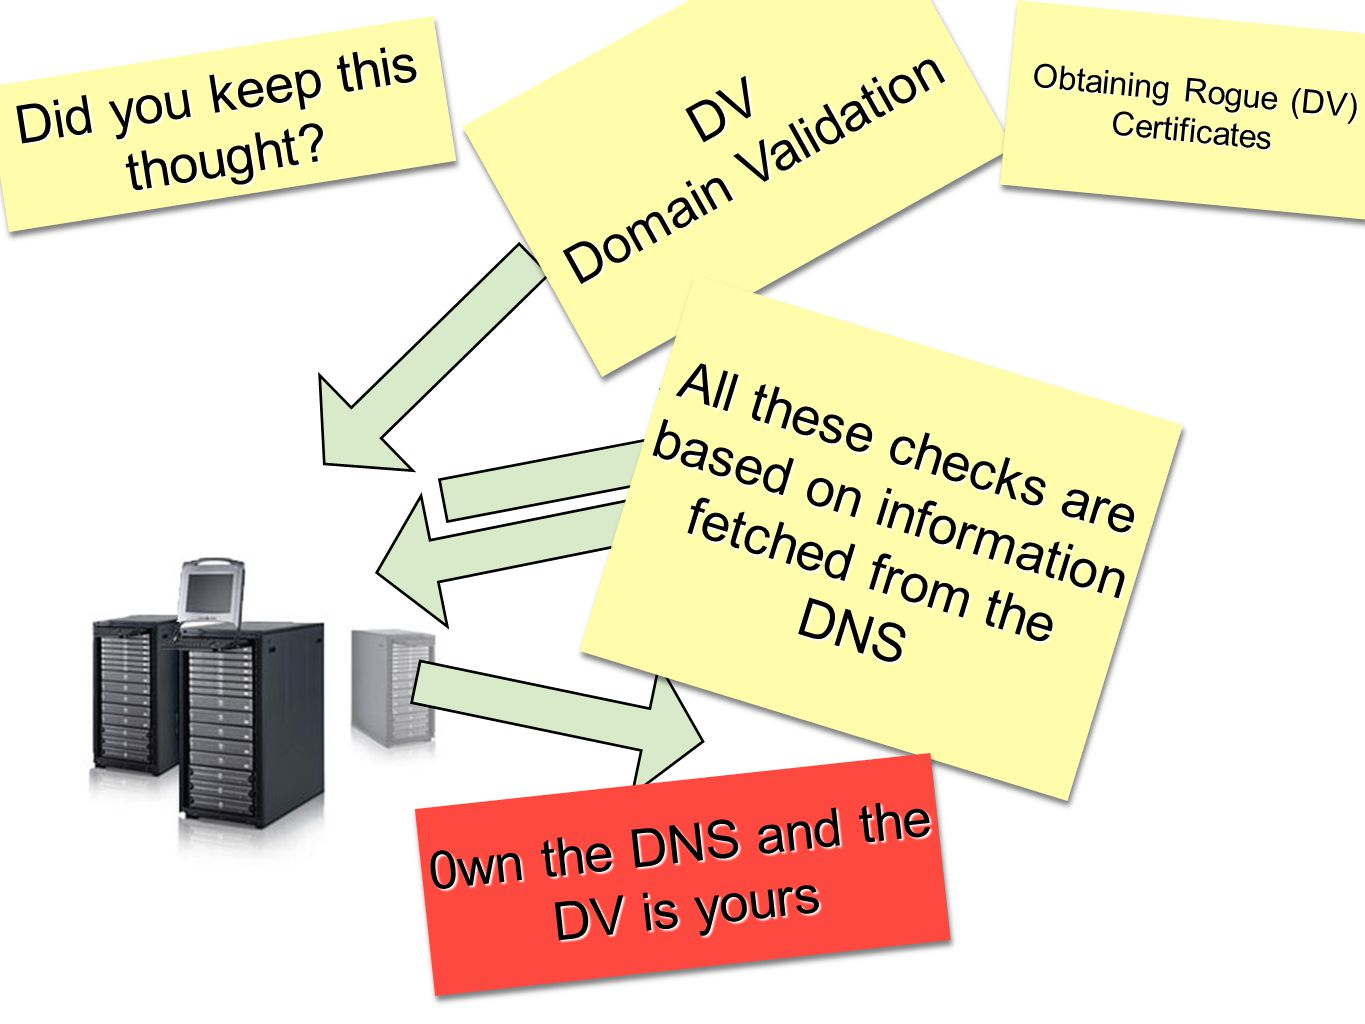 DV Domain Validation DV All these checks are based on information fetched from the DNS Did you keep this thought? 0wn the DNS and the DV is yours Obta